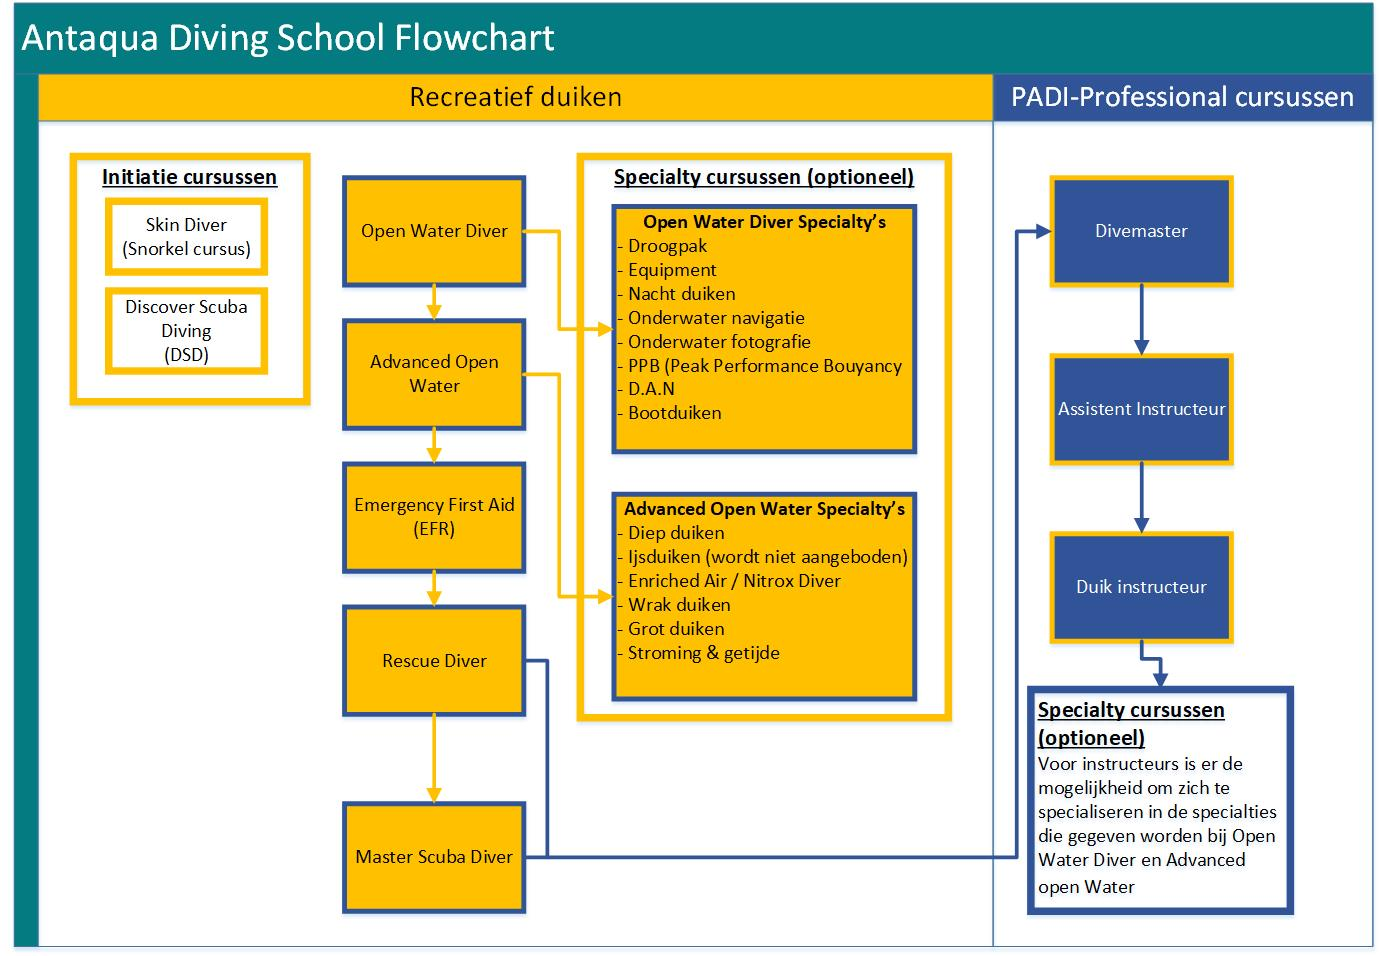 Antaqua Diving School Flowchart